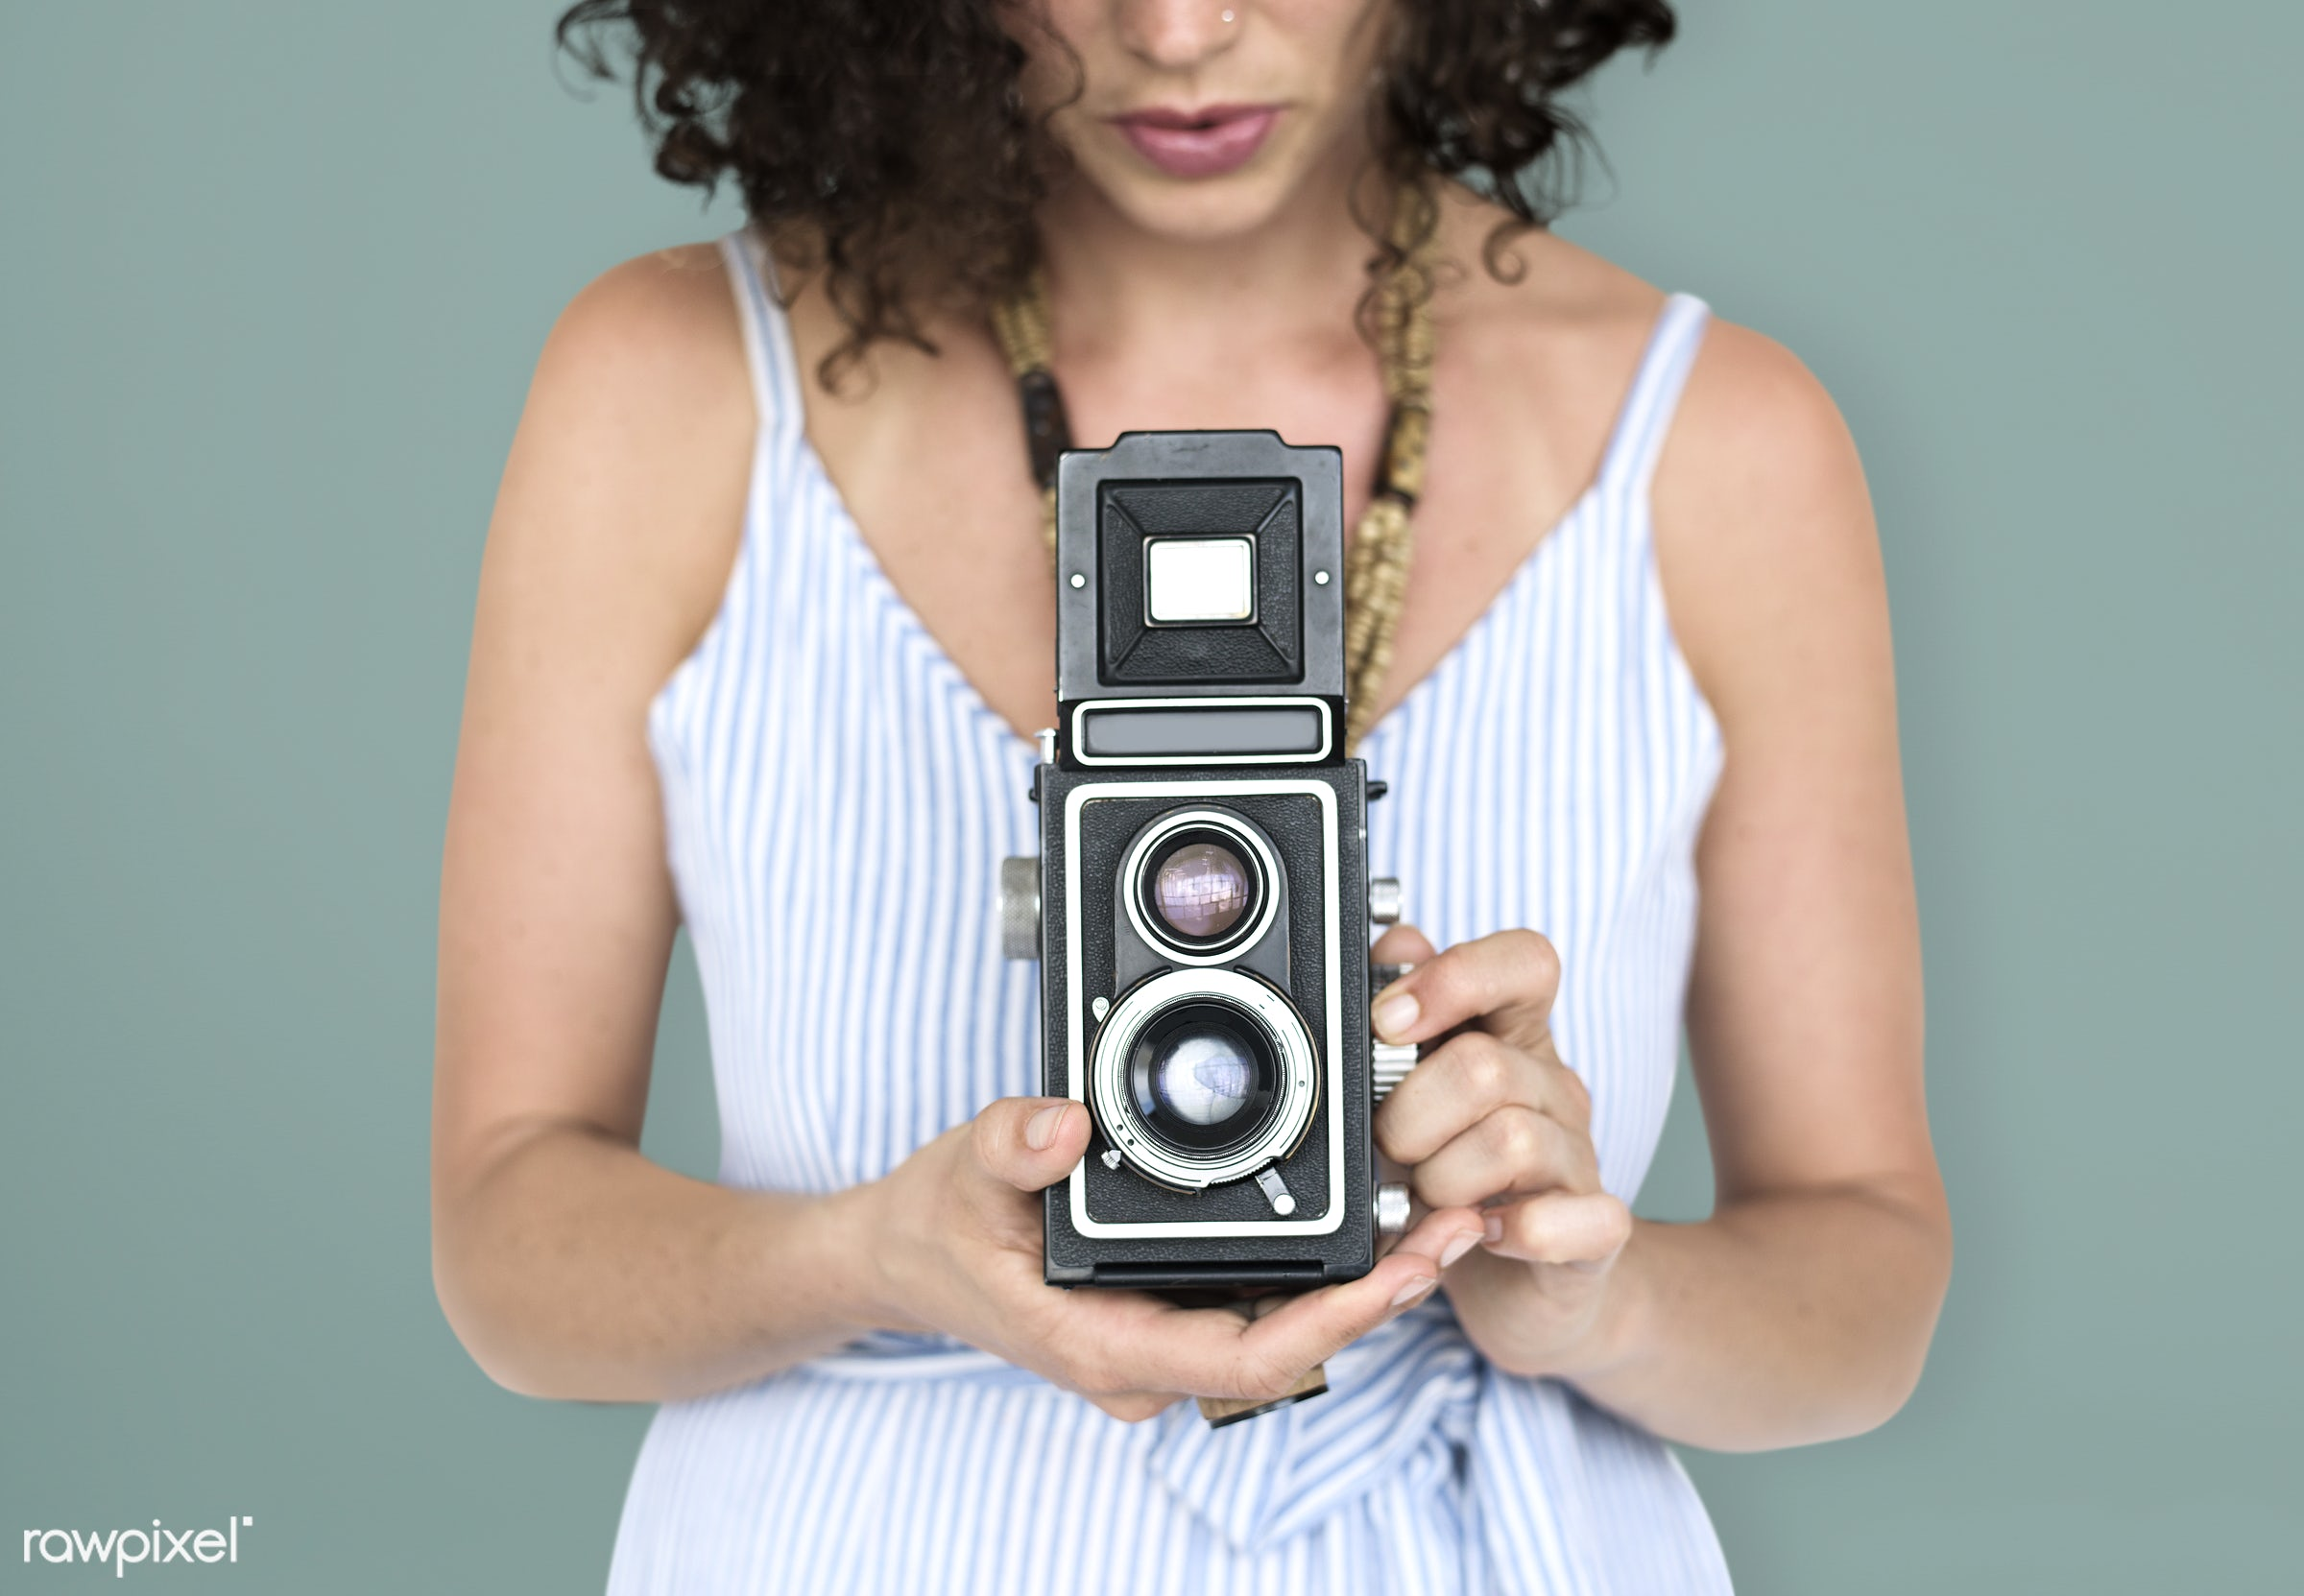 studio, necklet, press, person, retro, shot, people, photography, caucasian, hands, woman, photographer, isolated, vintage,...